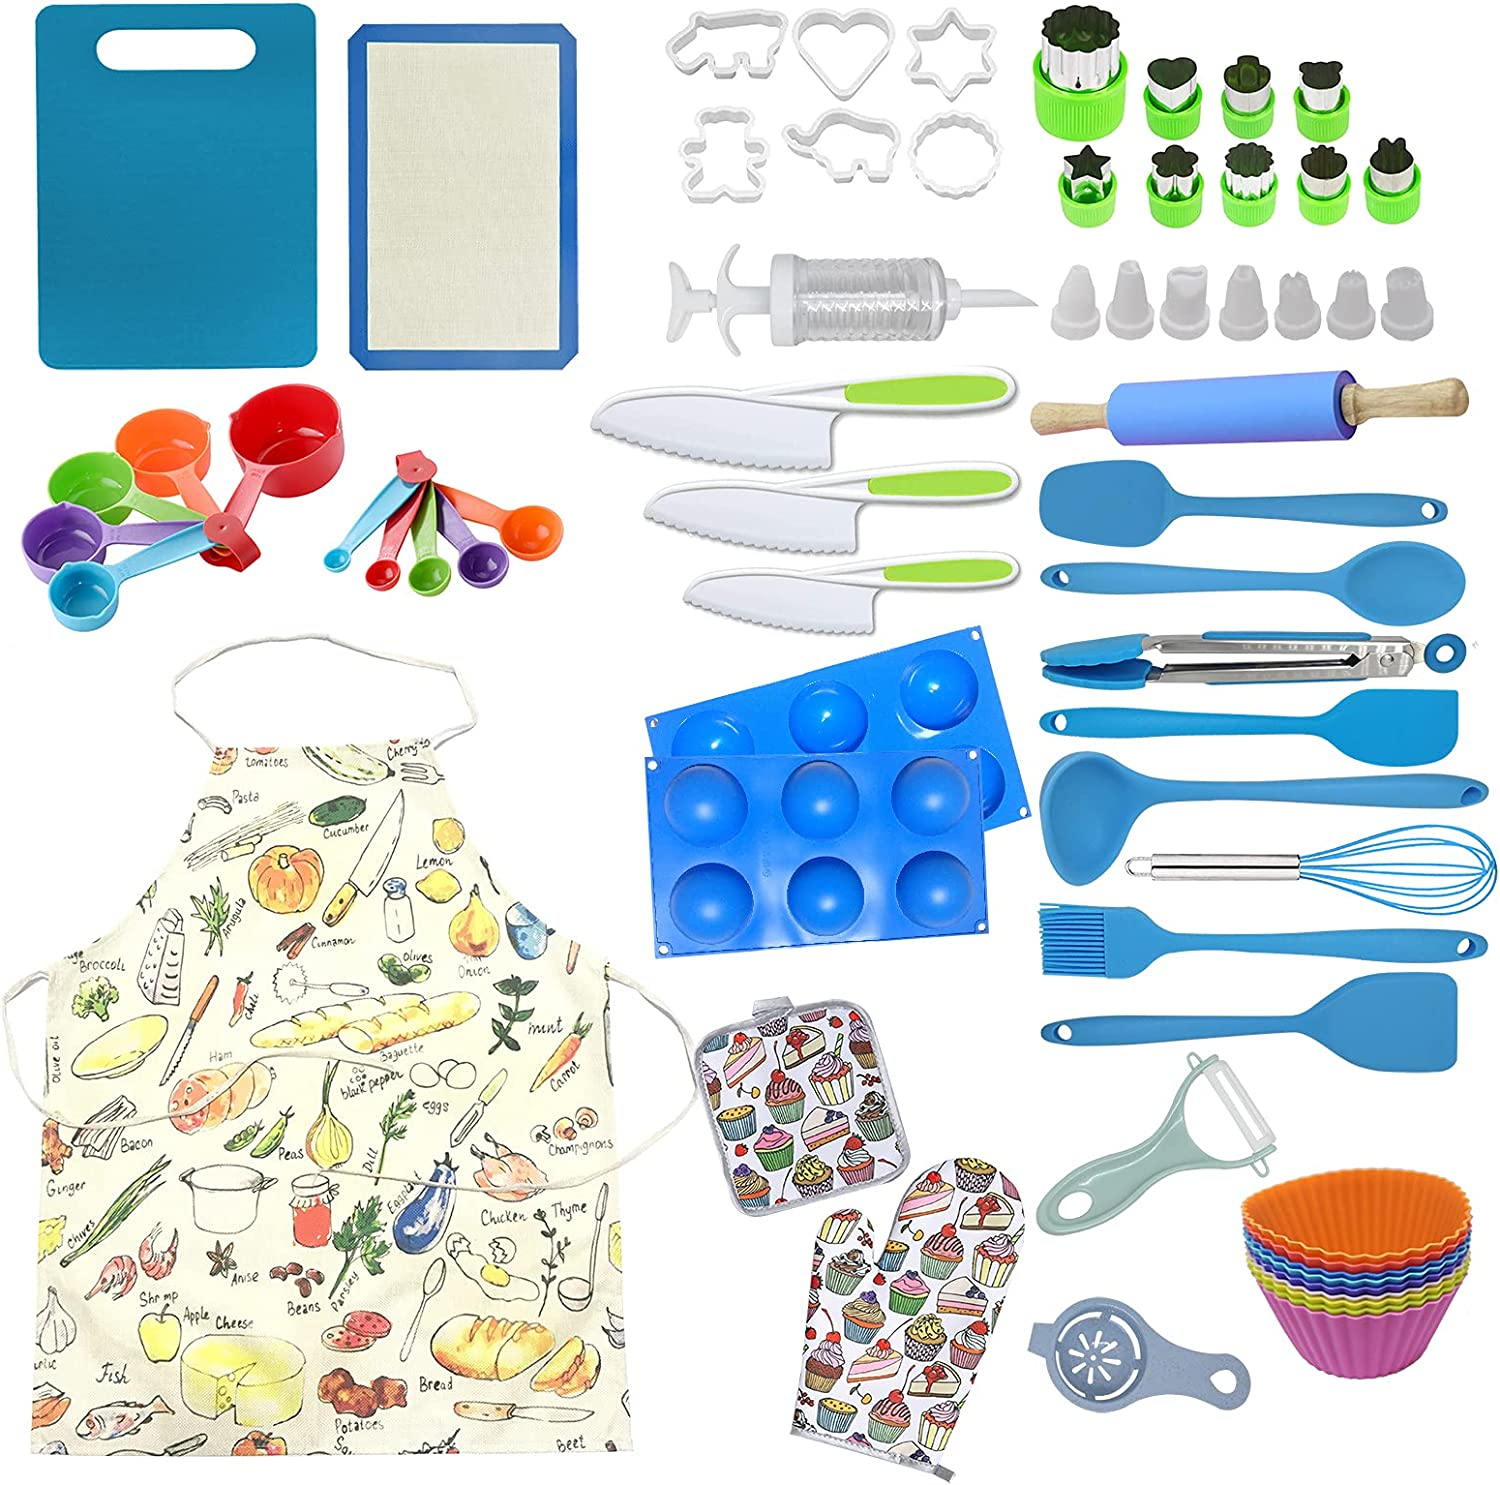 Mocoiron 63-Piece Chef Set for Cooking Kids- Baking Kitchen Spring new work Nippon regular agency one after another and